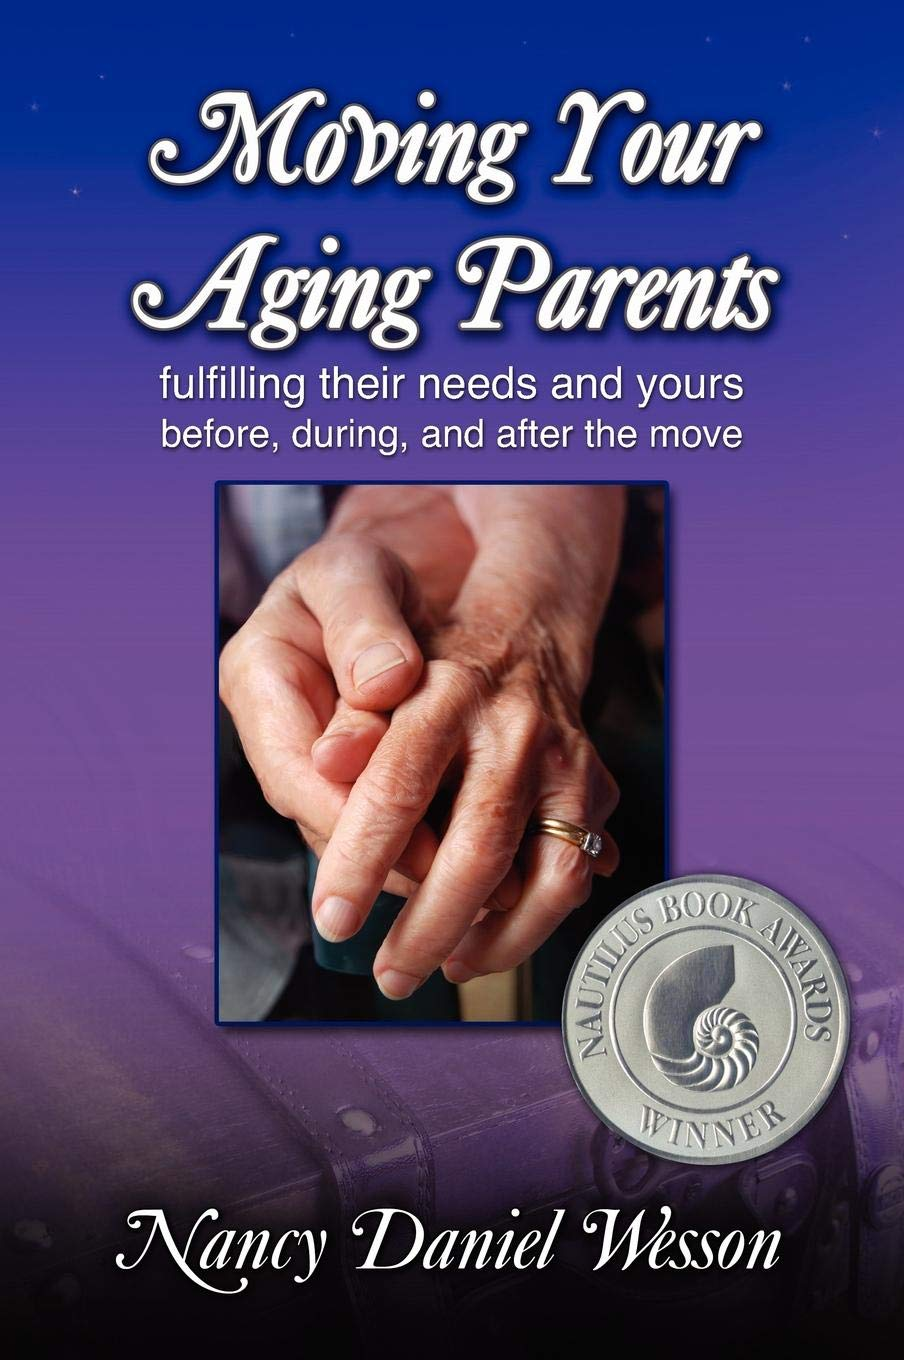 Moving Your Aging Parents:Fulfilling their Needs and Yours Before, During, and After the Move